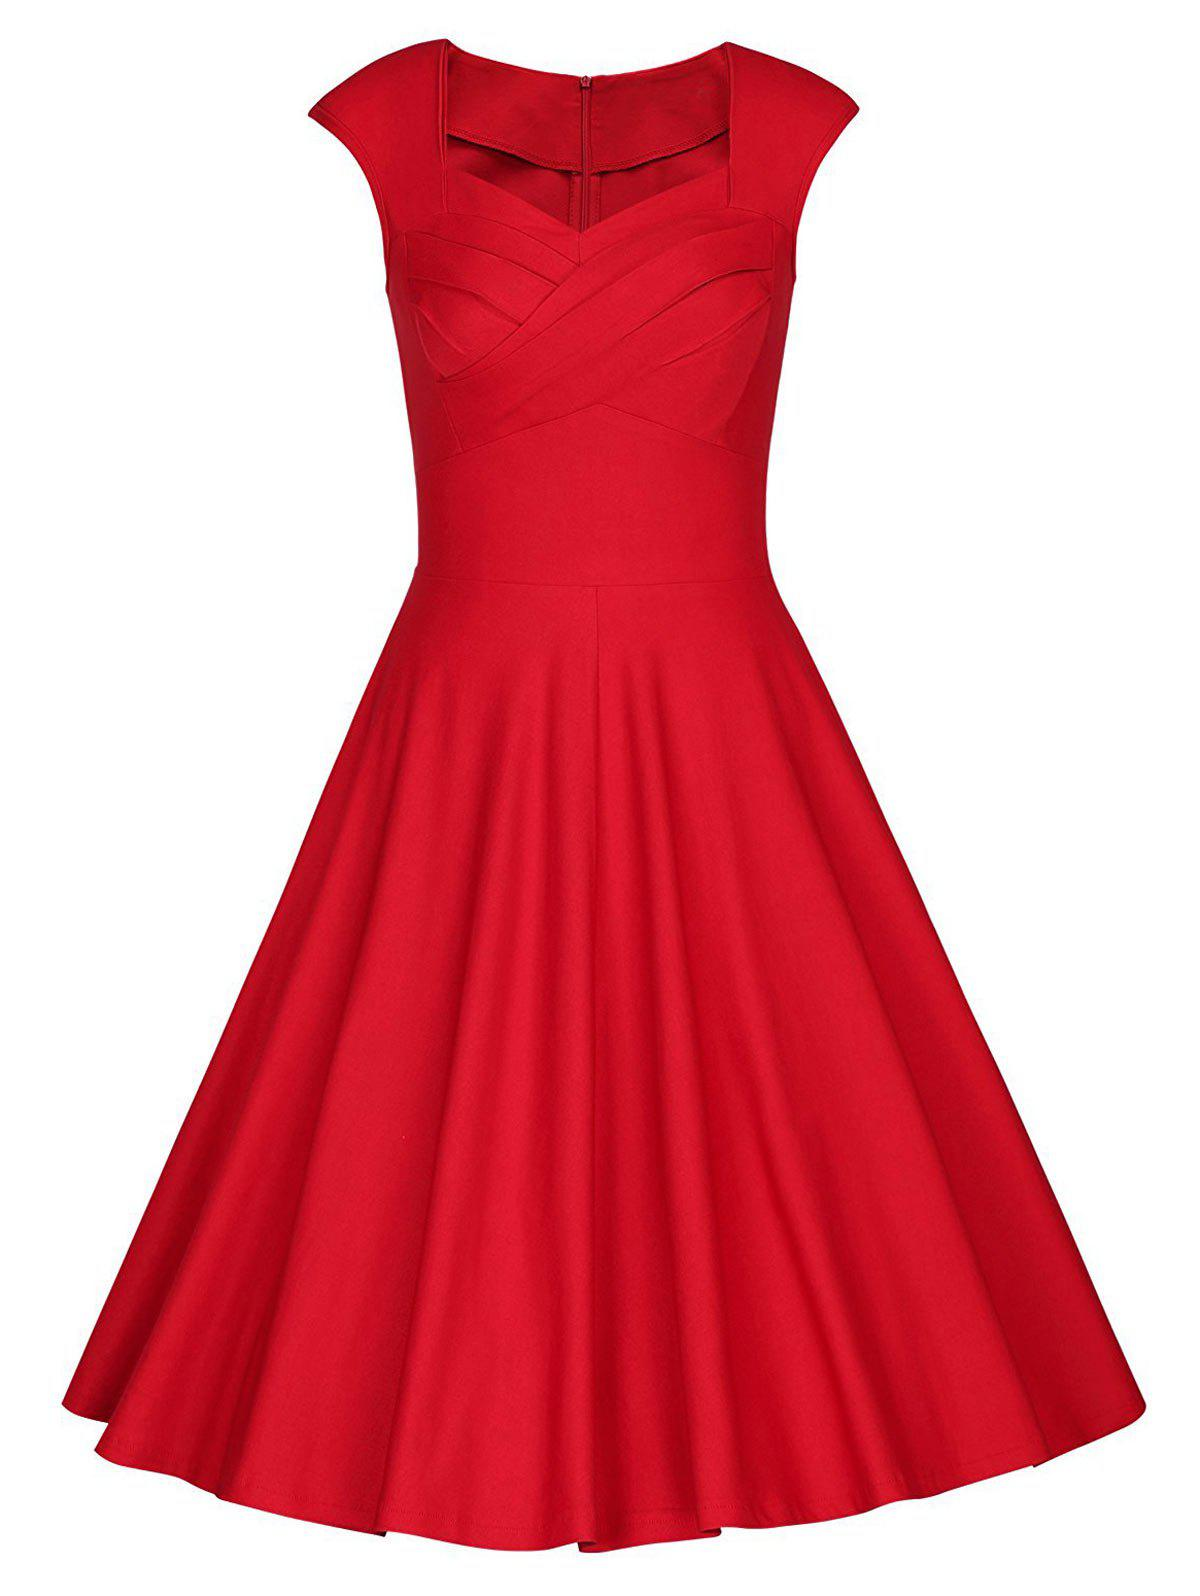 Vintage Sweetheart Neck Pin Up Party Dress - Rouge S